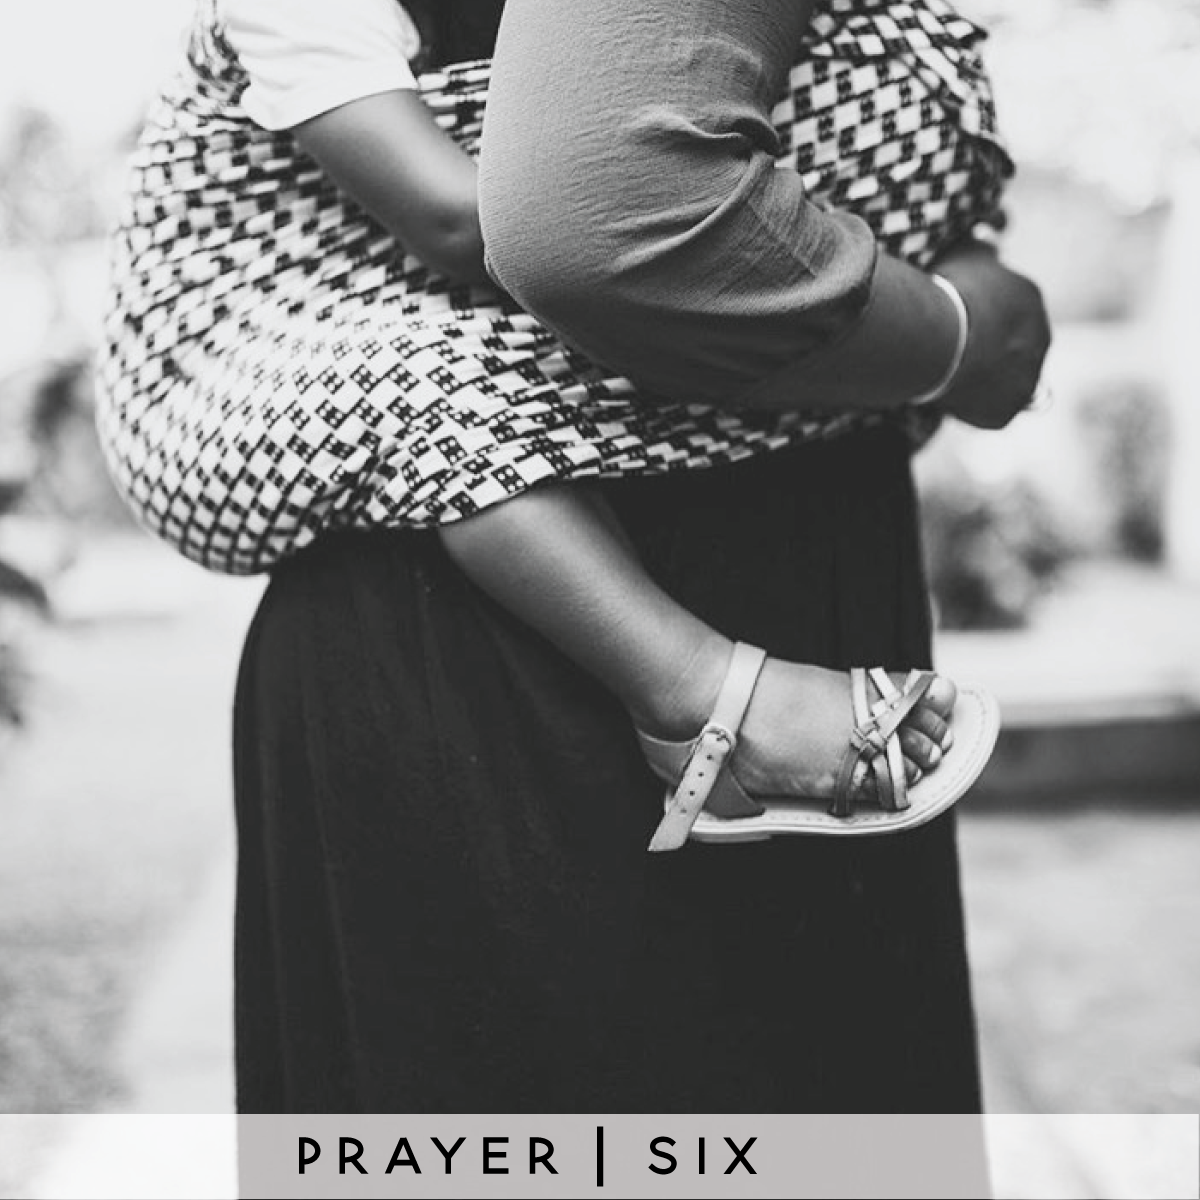 """6. PRAYER FOR AUTHORITY    1 Timothy 2:1-3 """"First of all, then, I urge that supplications, prayers, intercessions, and thanksgivings be made for all people, for kings and all who are in high positions, that we may lead a peaceful and quiet life, godly and dignified in every way. This is good, and it is pleasing in the sight of God our Savior.""""    Lord, you ask us to intercede and pray for kings and all who are in high positions. God, we know because of scripture and history that people in high positions are especially vulnerable to corruption. God would you affirm the men and women who are currently serving with godly character, integrity, and courage. Please expose and remove anyone serving with corruption in our justice system and law enforcement. Father deal justly with any use of power used to oppress, discriminate, racially profile, or use excessive force. Christ, would you redeem any sin and corruption that humanity's fallen state has caused in law enforcement that we may be able to lead peaceful, quiet and godly   lives."""